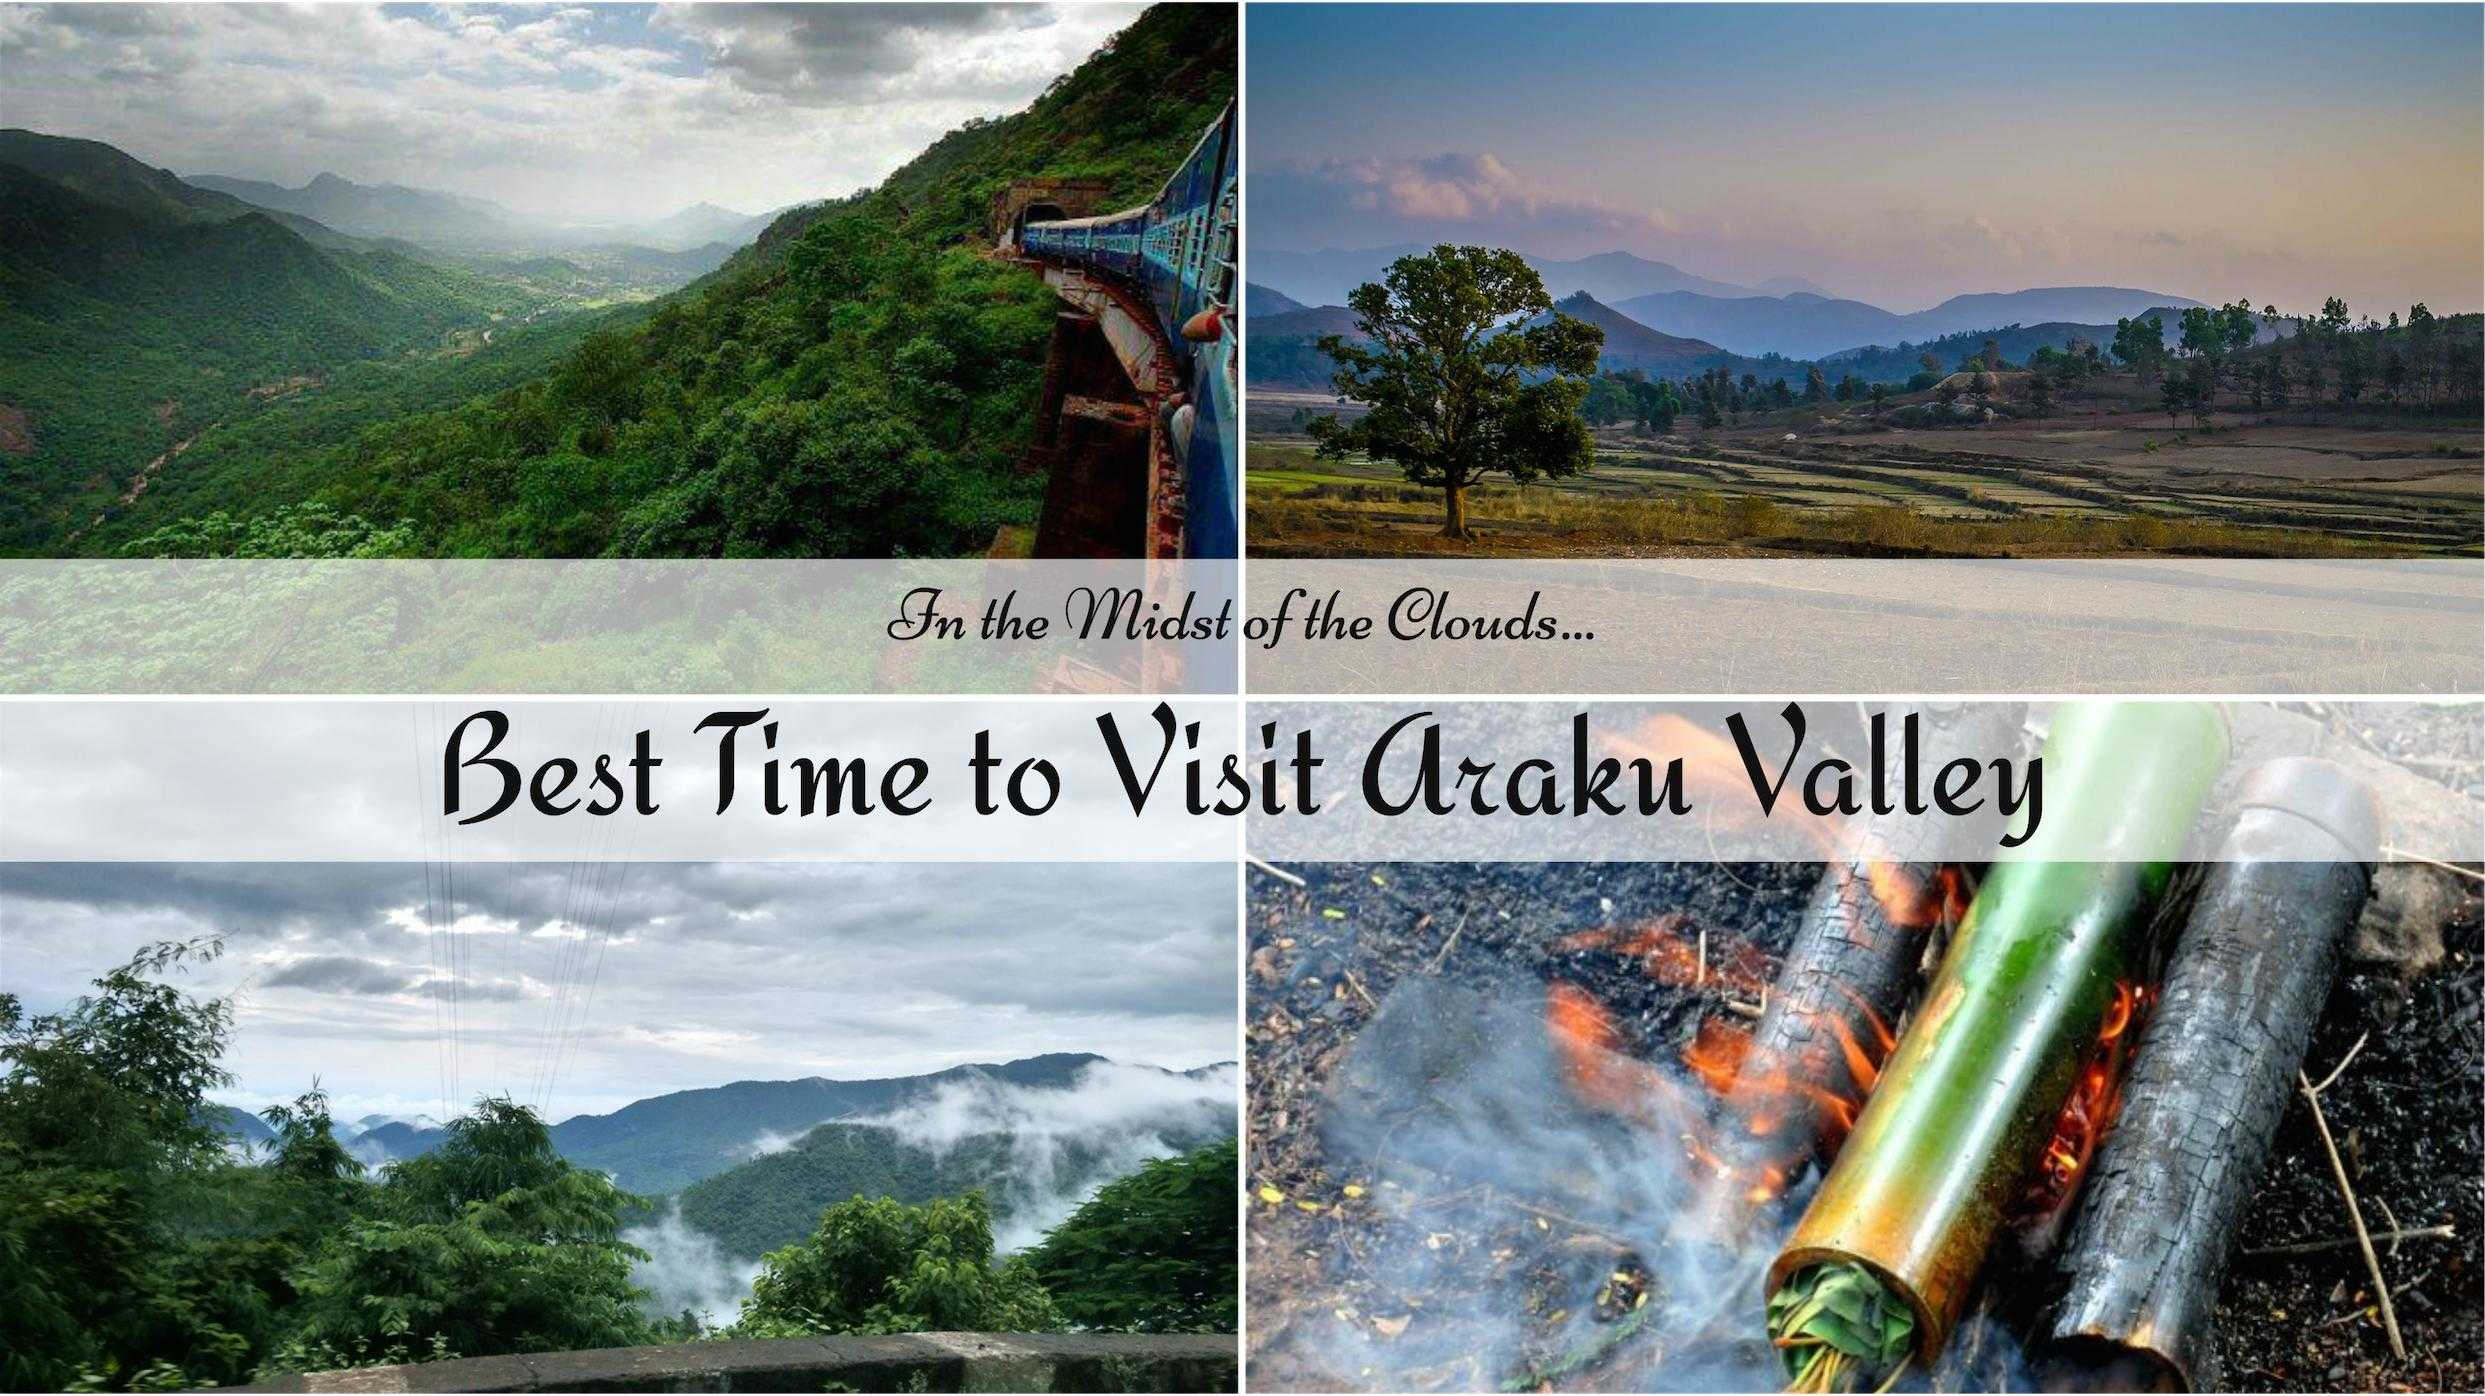 best-time-to-visit-araku-valley.jpg